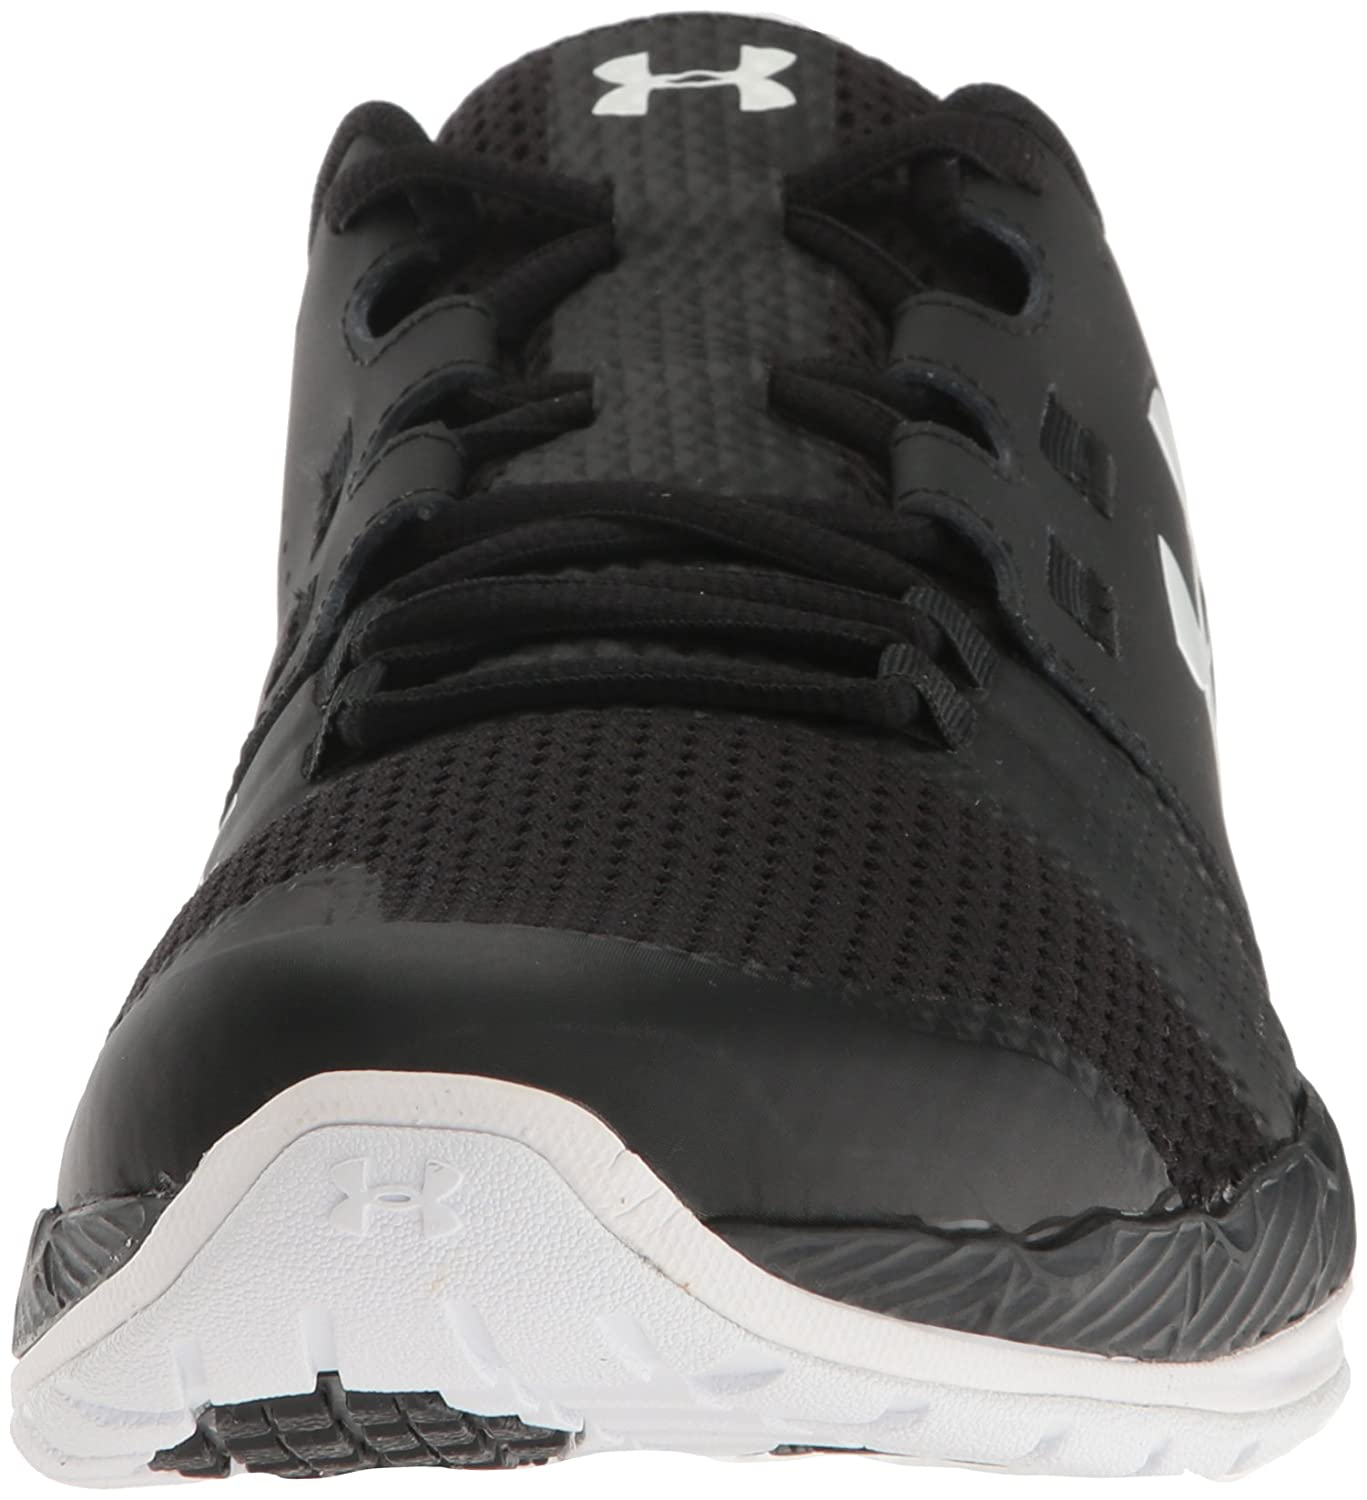 Under Armour Menn Begår Trening Cross-trener Sko WJ4bZfTI